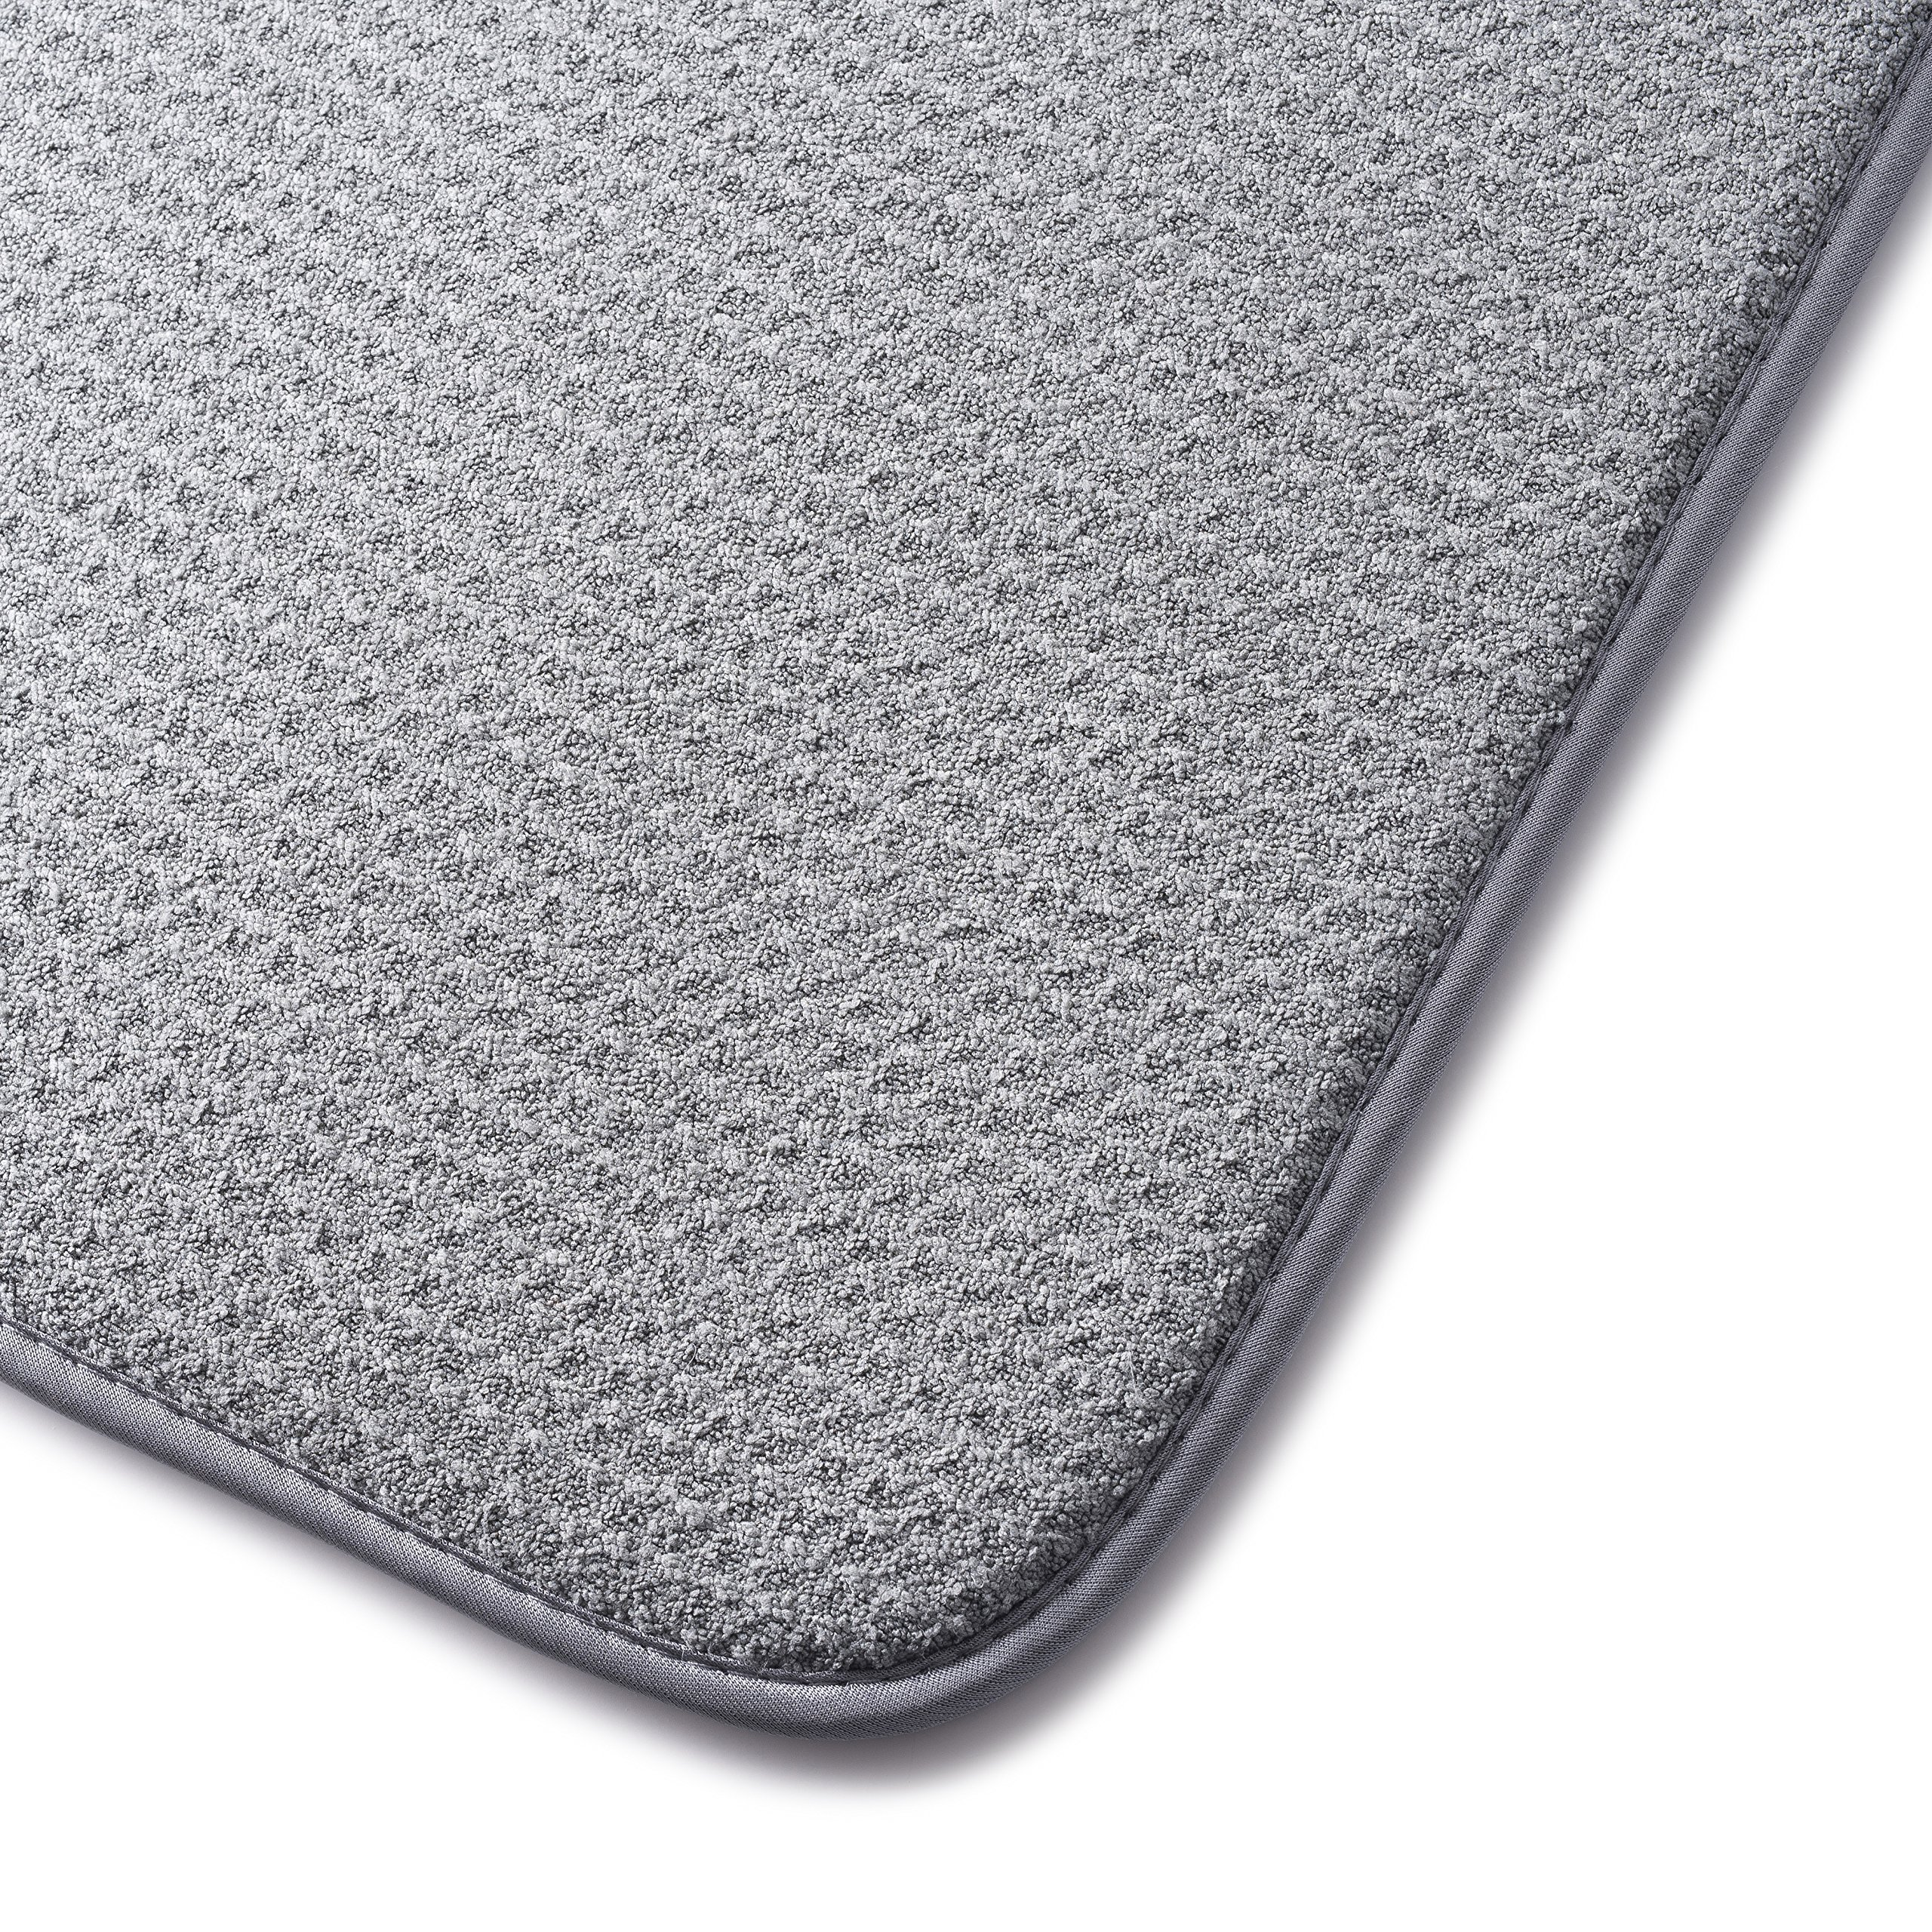 XXL Dish Mat 24'' x 17'' (LARGEST MAT) Microfiber Dish Drying Mat, Super absorbent by Bellemain by Bellemain (Image #6)